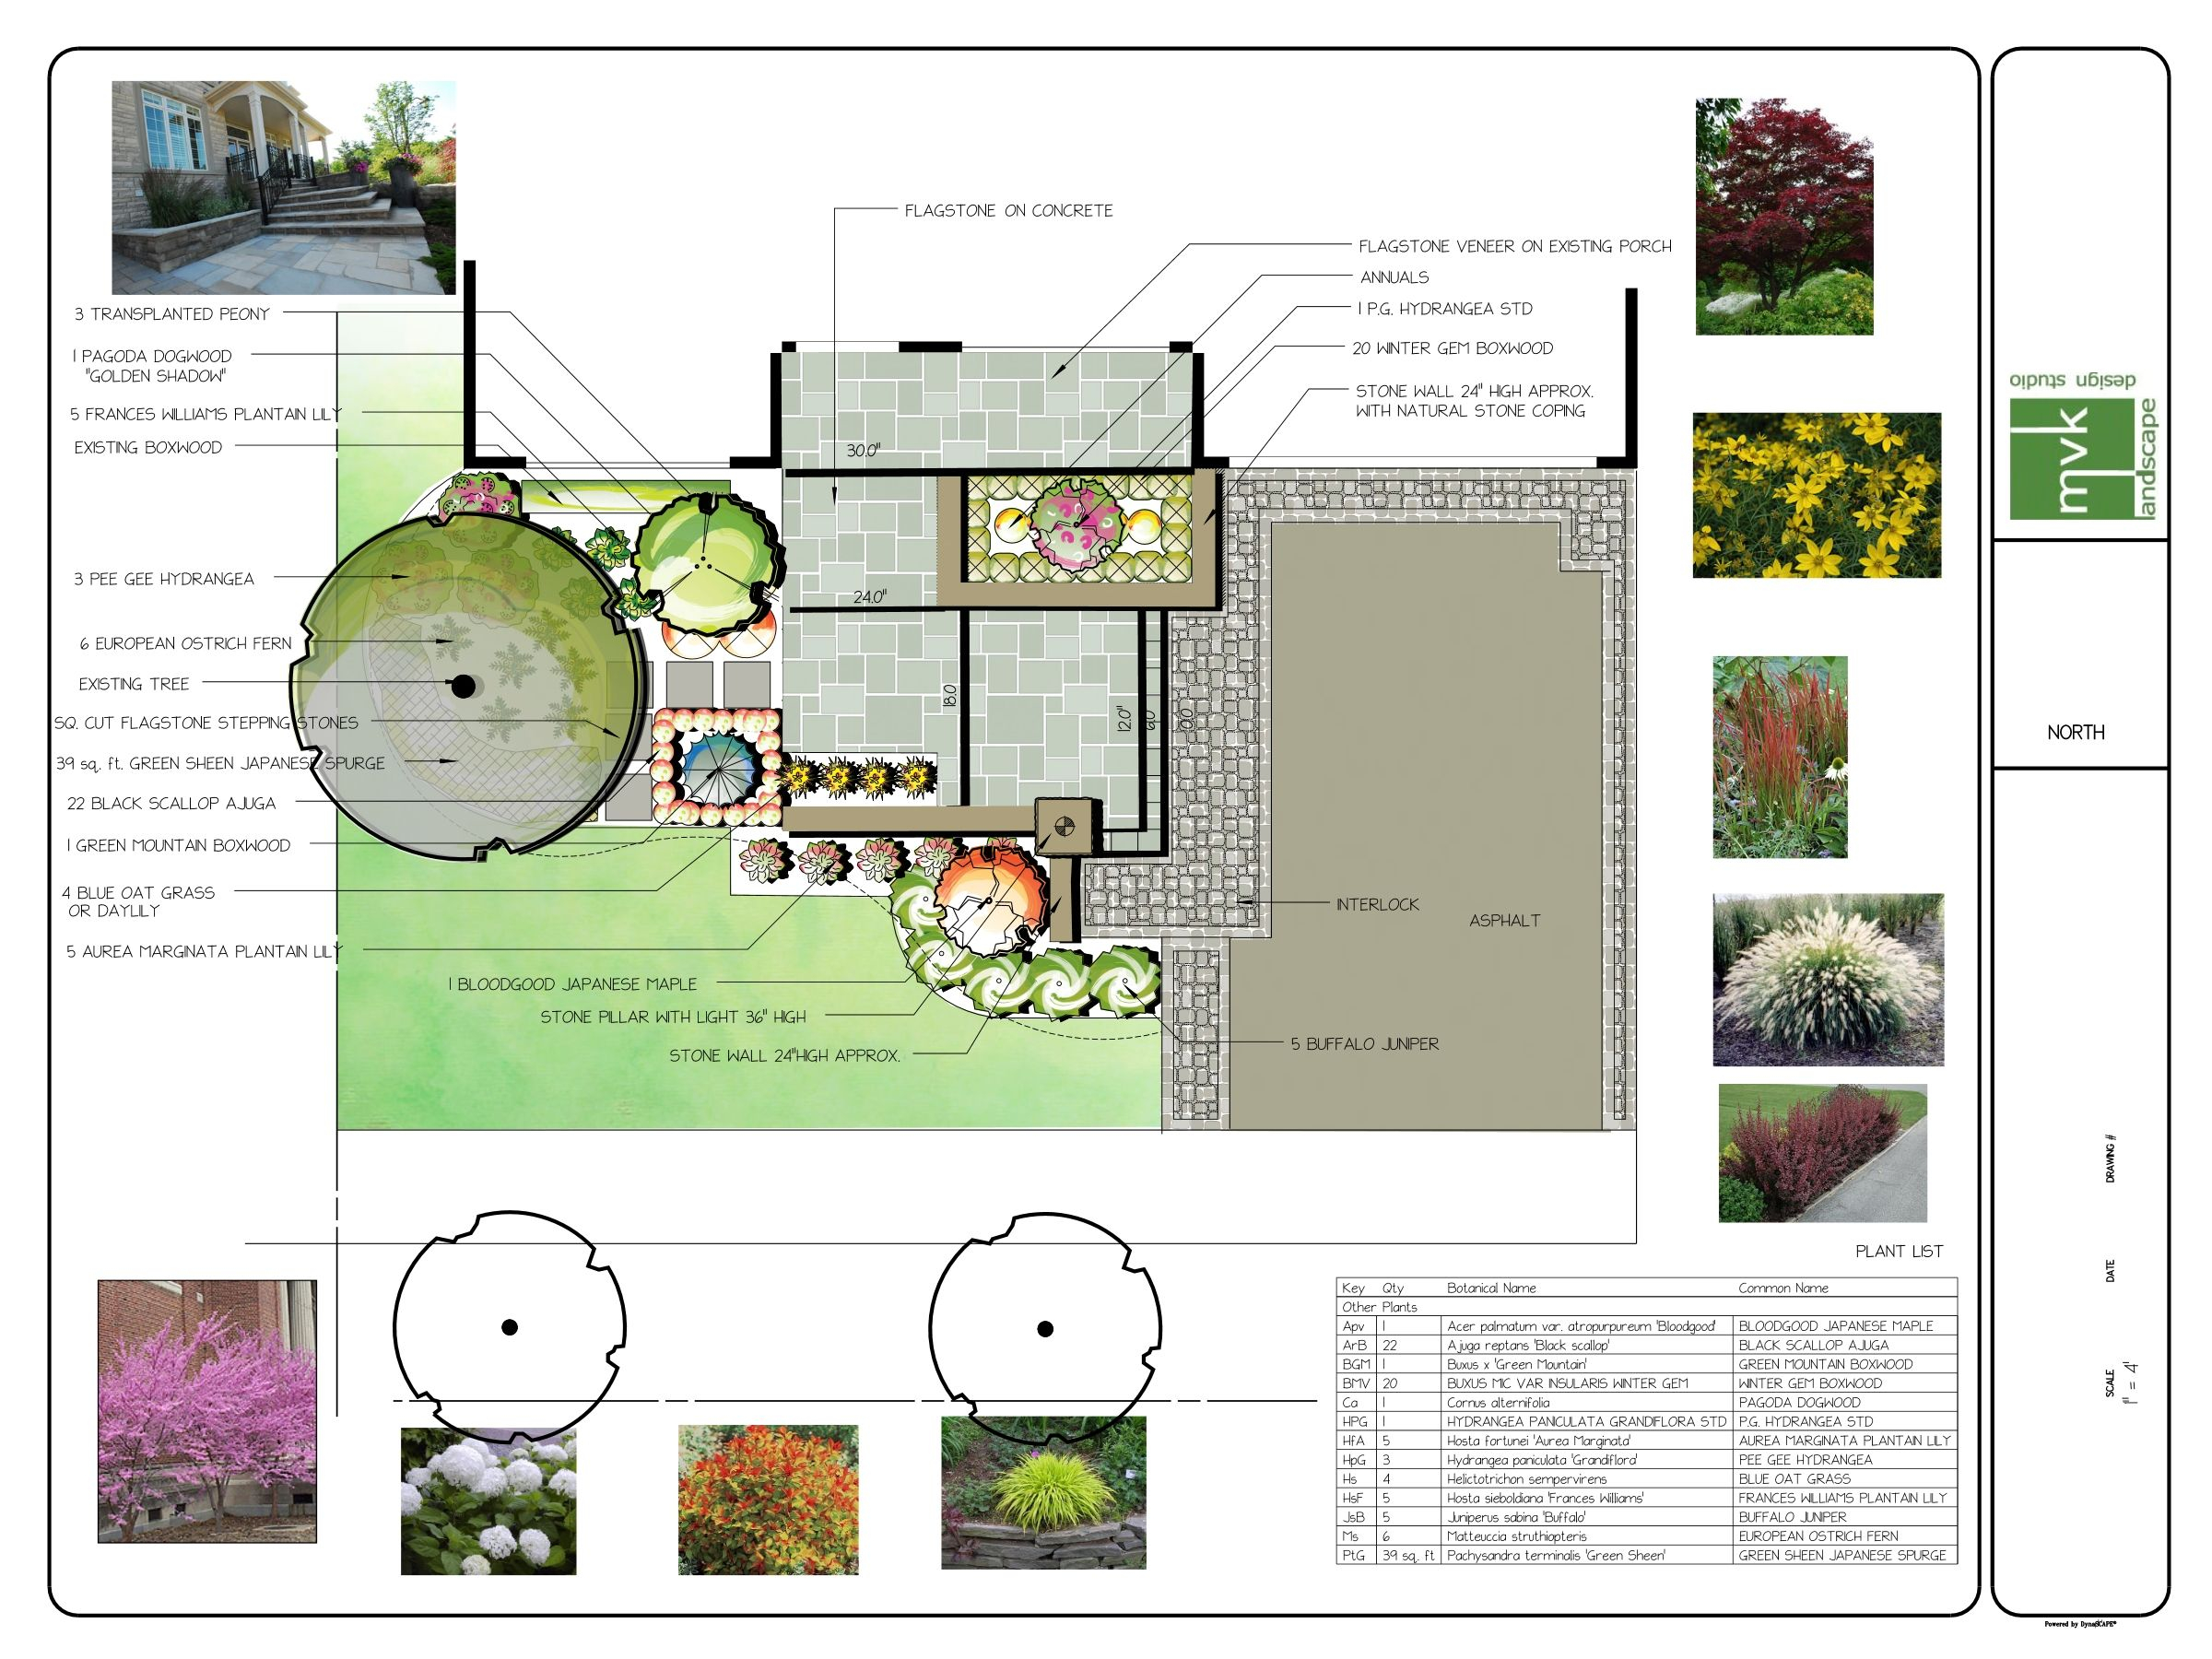 Glamorous Landscape Design Online Planner And Online Pool Landscape Design in Landscape Drawing Software